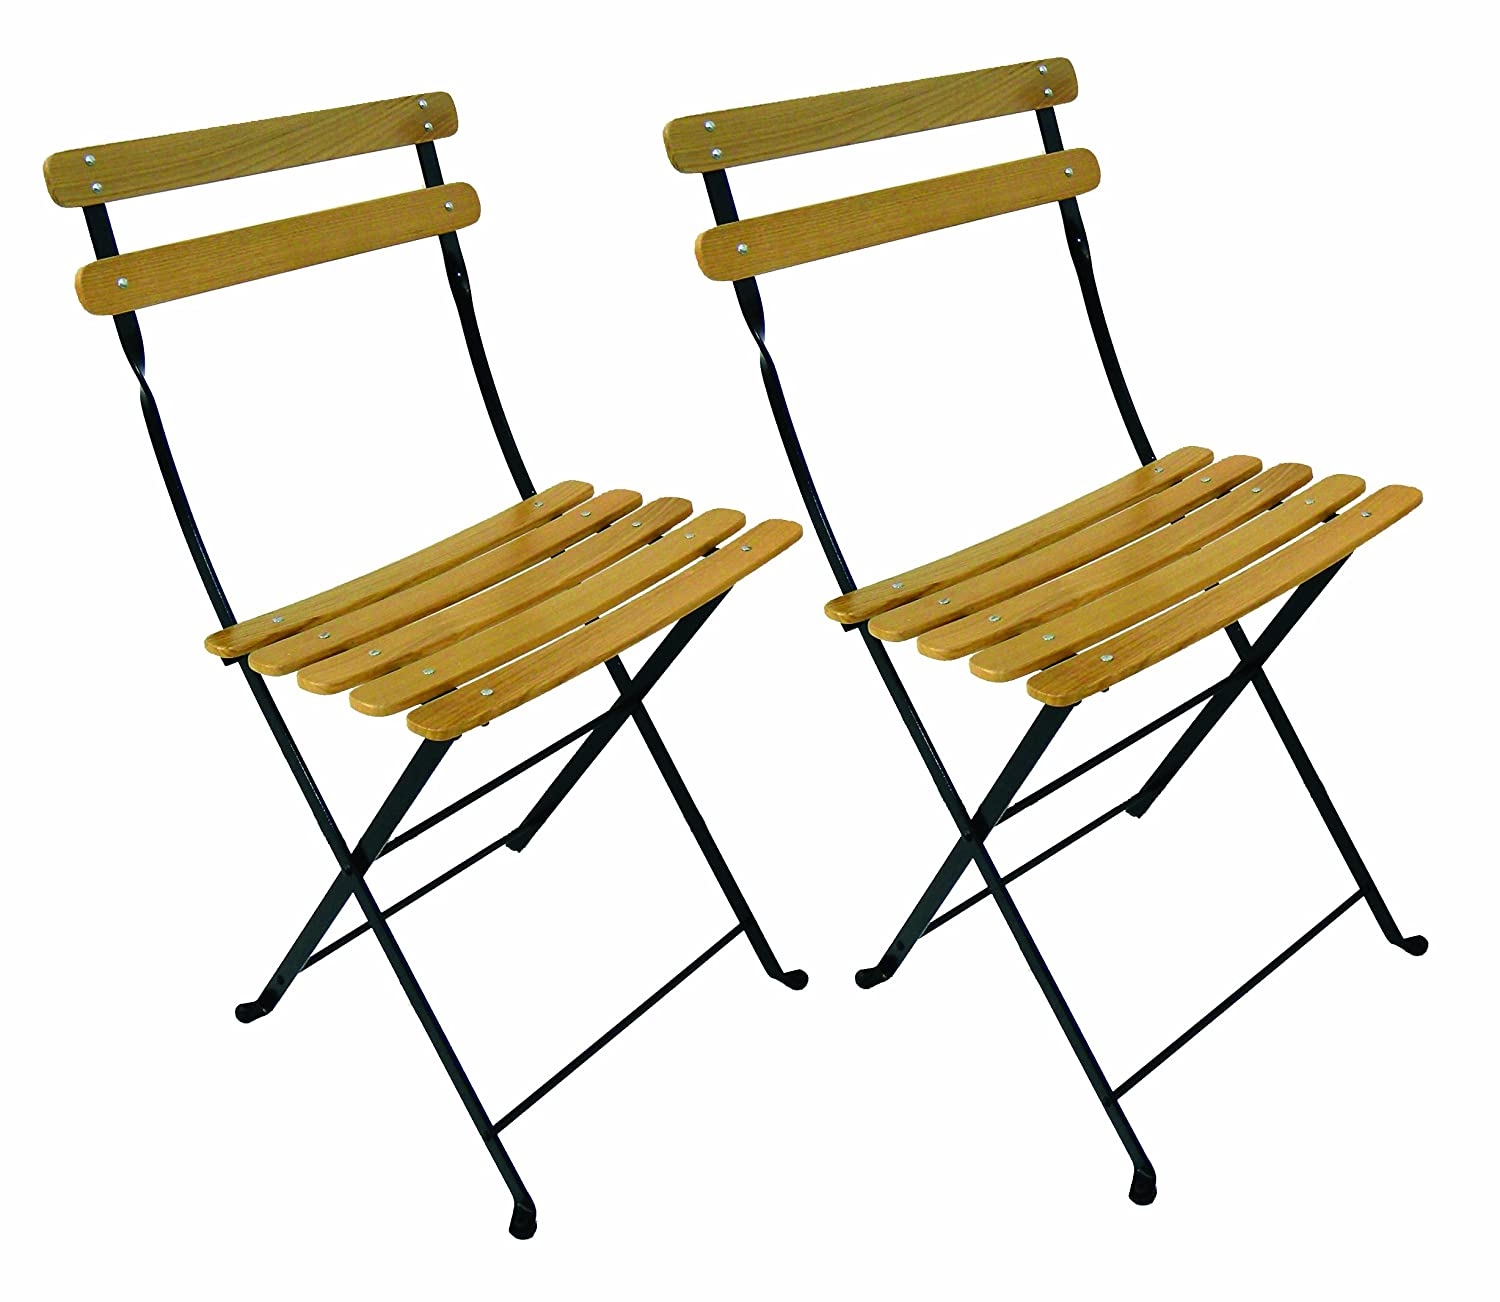 Amazon.com : Mobel Designhaus French Café Bistro Folding Side Chair, Jet  Black Frame, Clear Painted European Chestnut Wood Slats (Pack Of 2) :  Wrought Iron ...